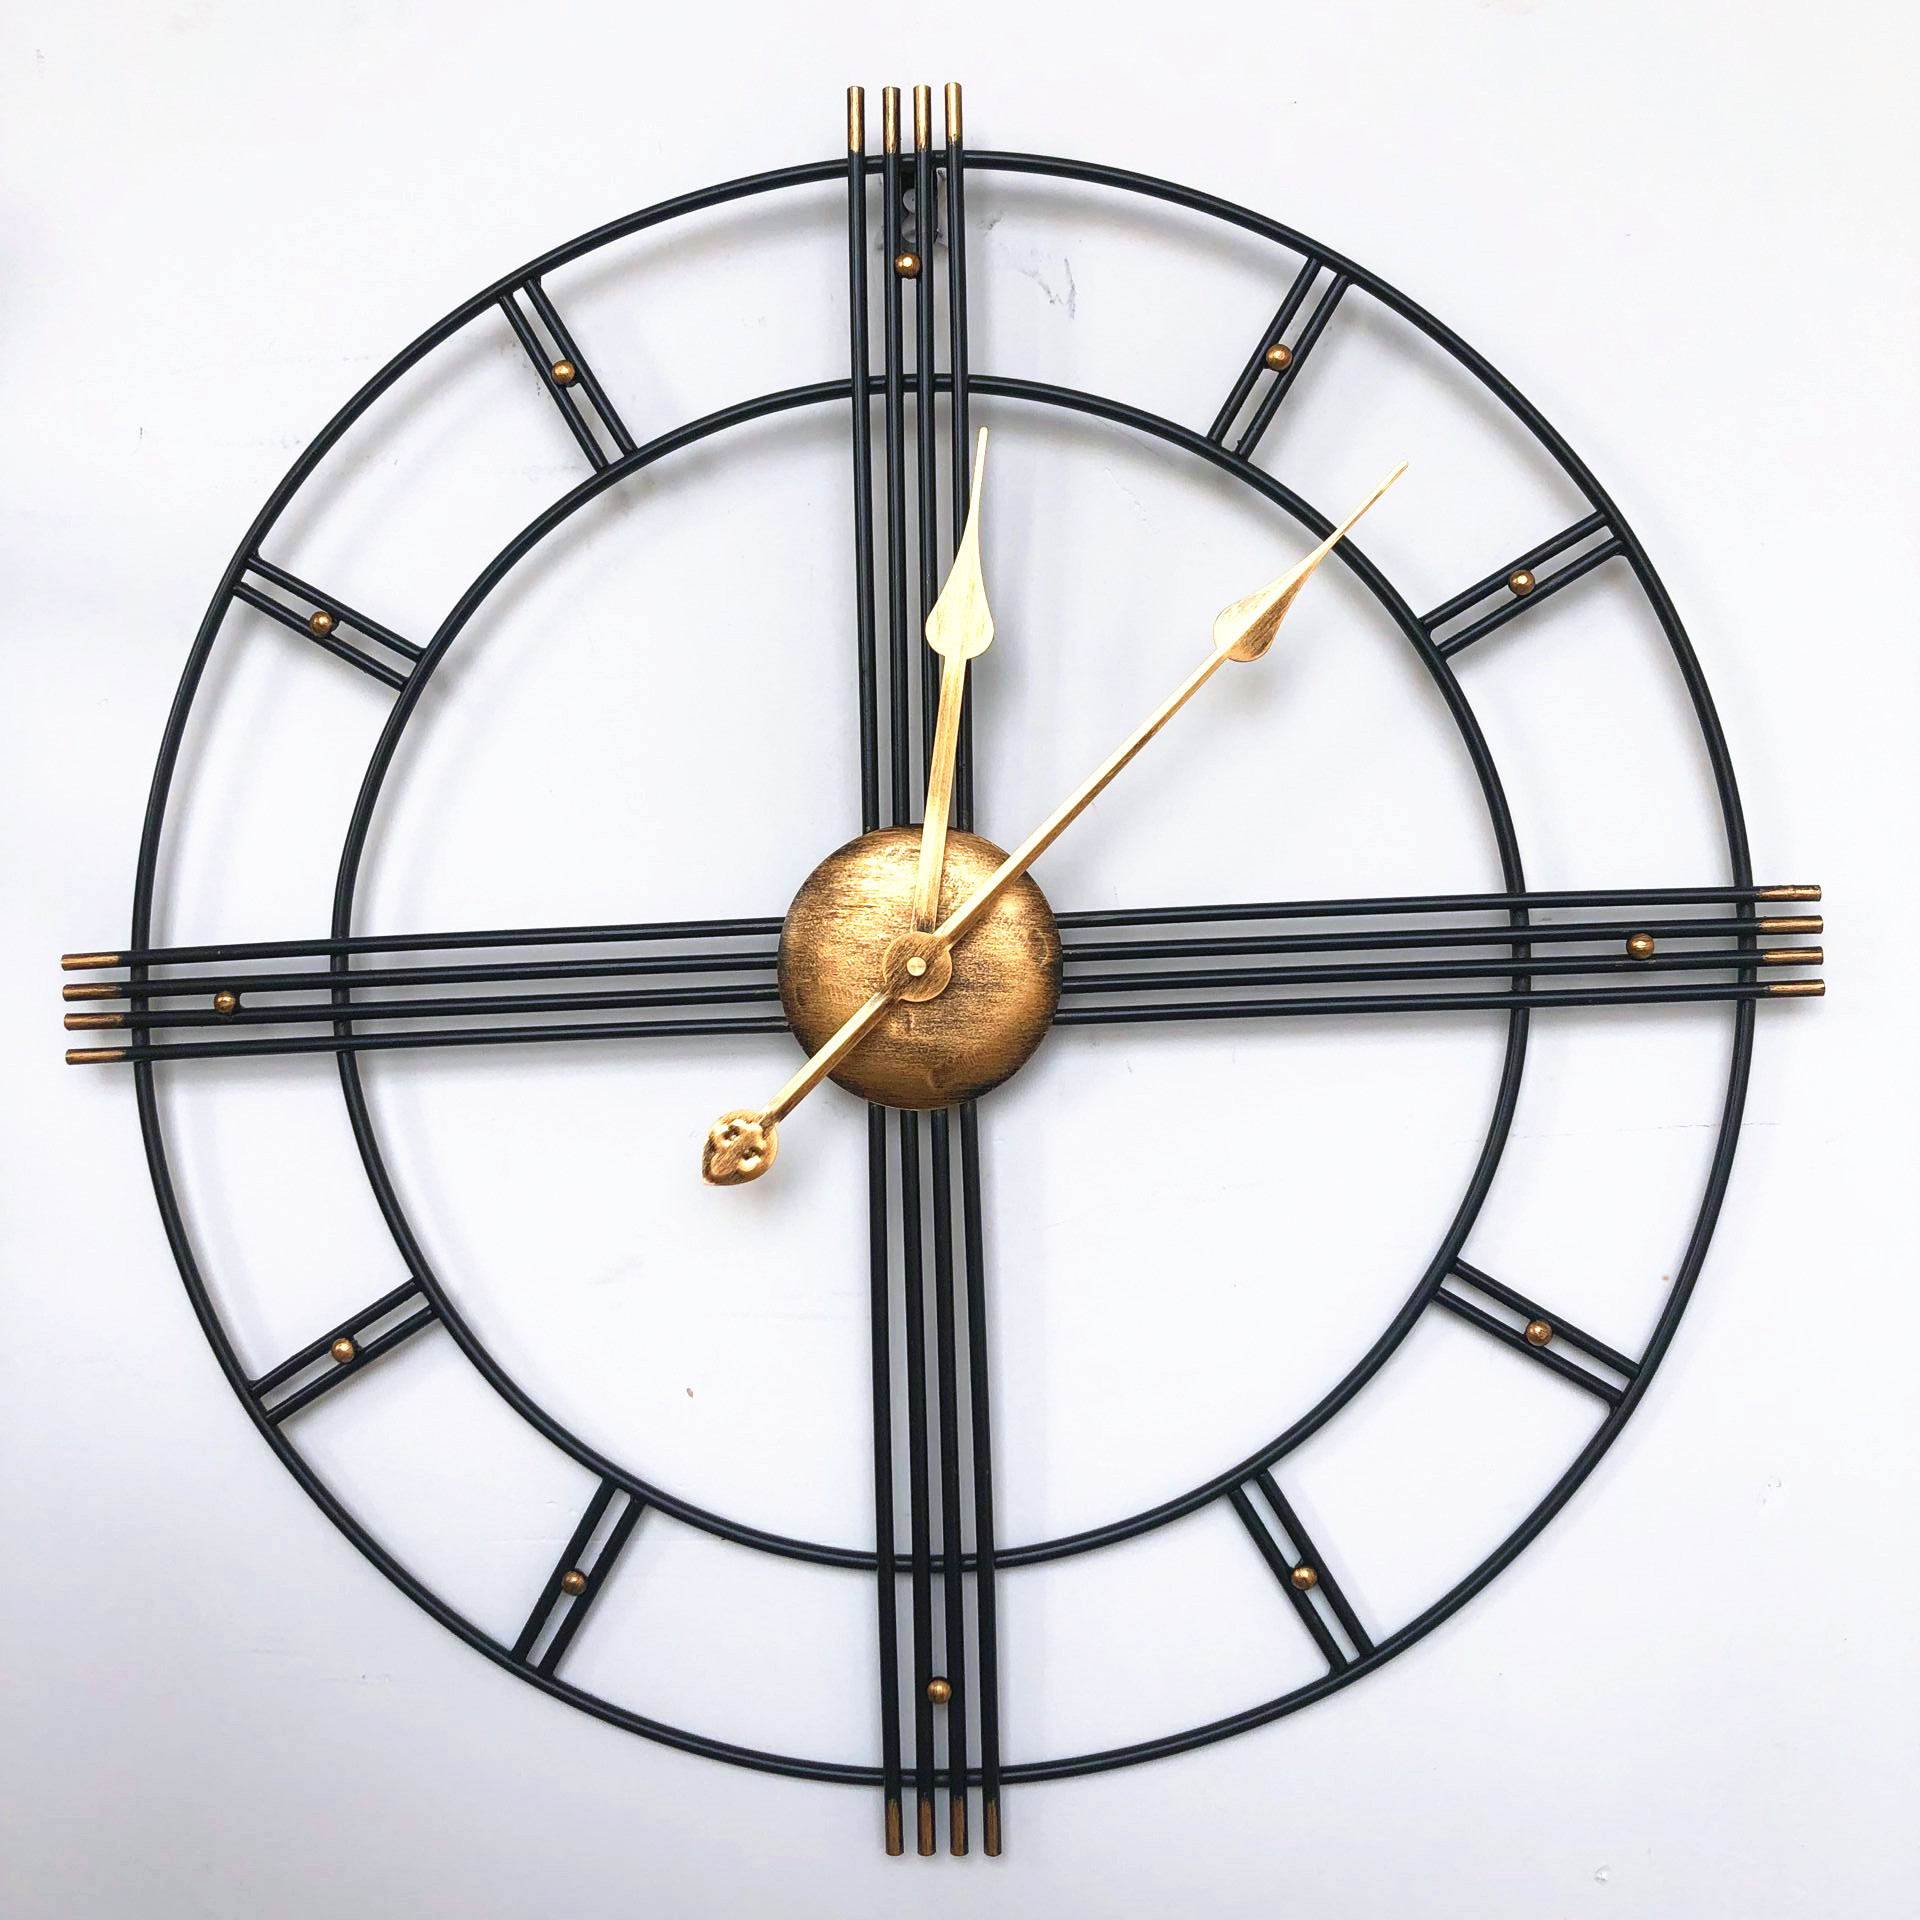 60cm Nordic Creative Retro Metal Wrought Iron Roman Clock Wall Clock Modern Design Living Room Silent Decorative Quartz Clock image